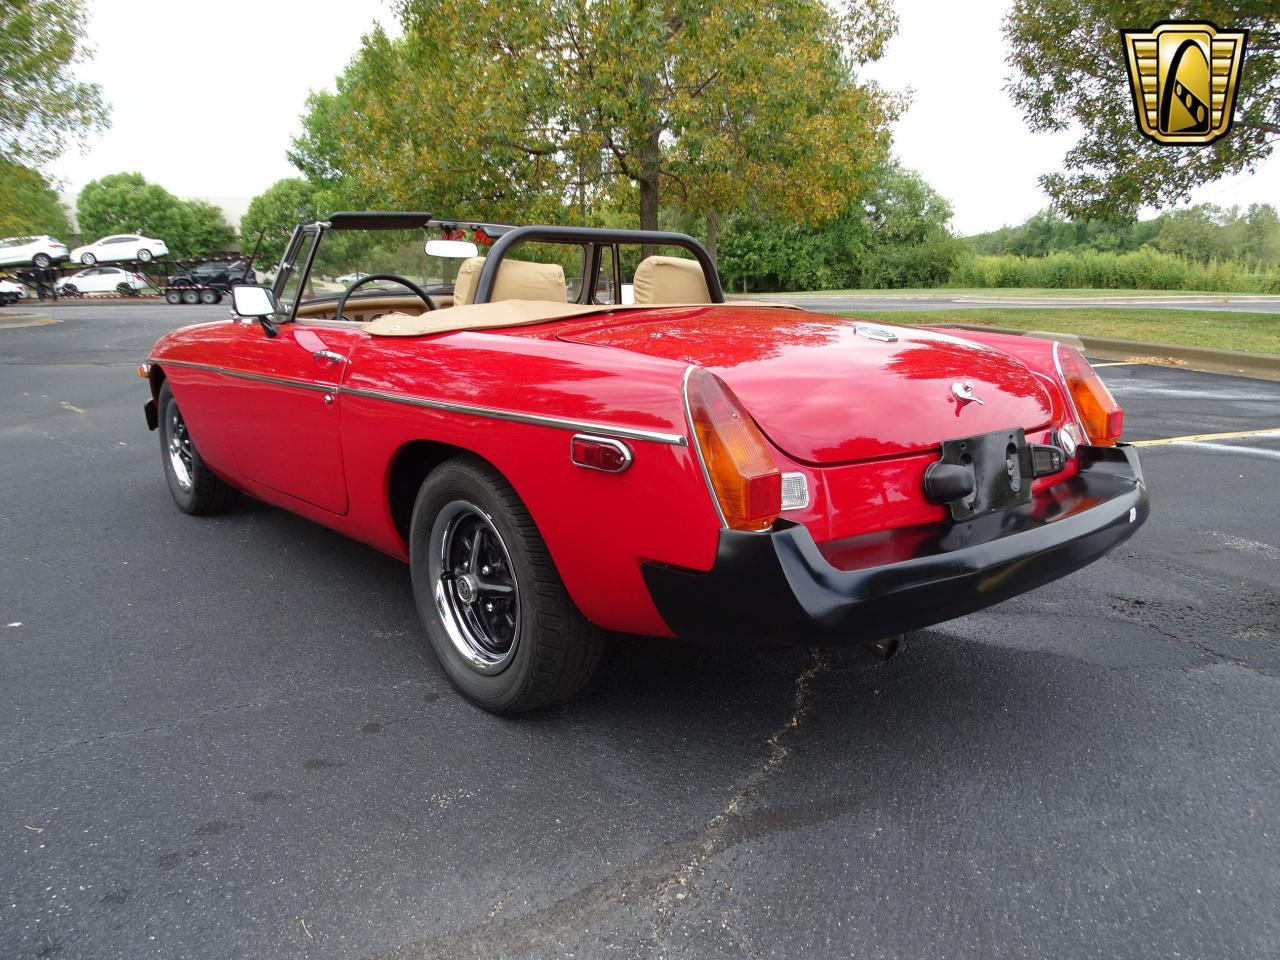 Large Picture of '78 MG MGB located in O'Fallon Illinois Offered by Gateway Classic Cars - St. Louis - LVNA